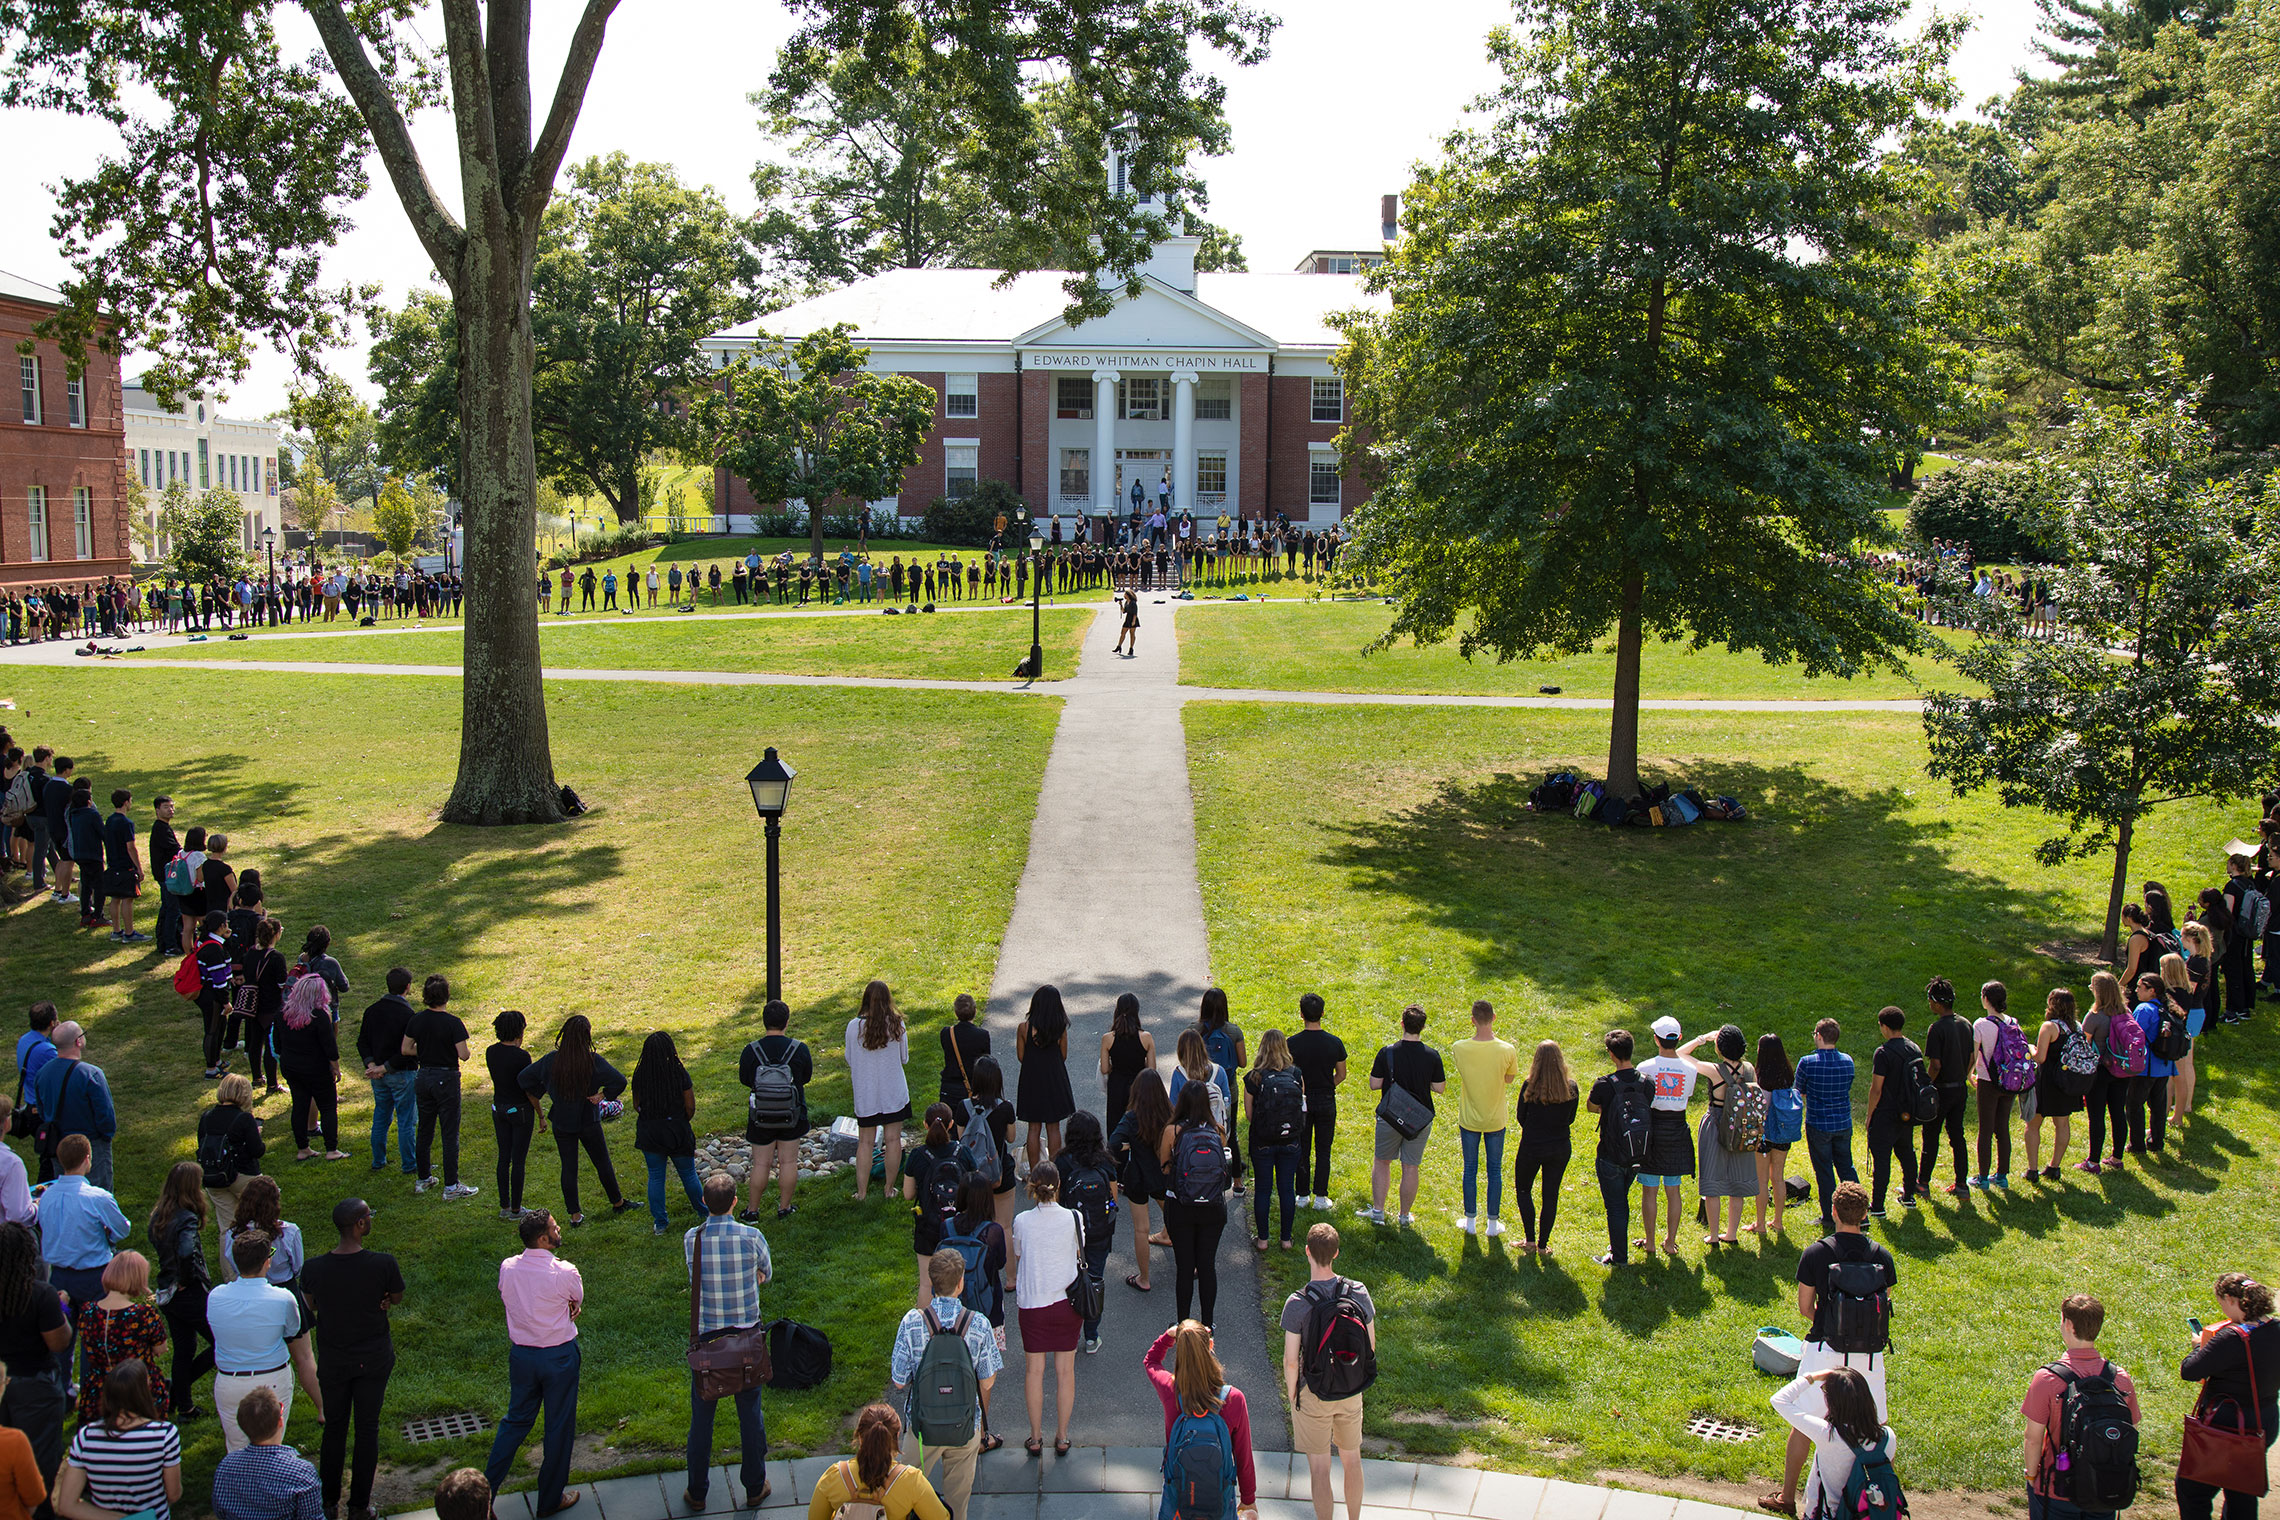 Students gathering on campus.